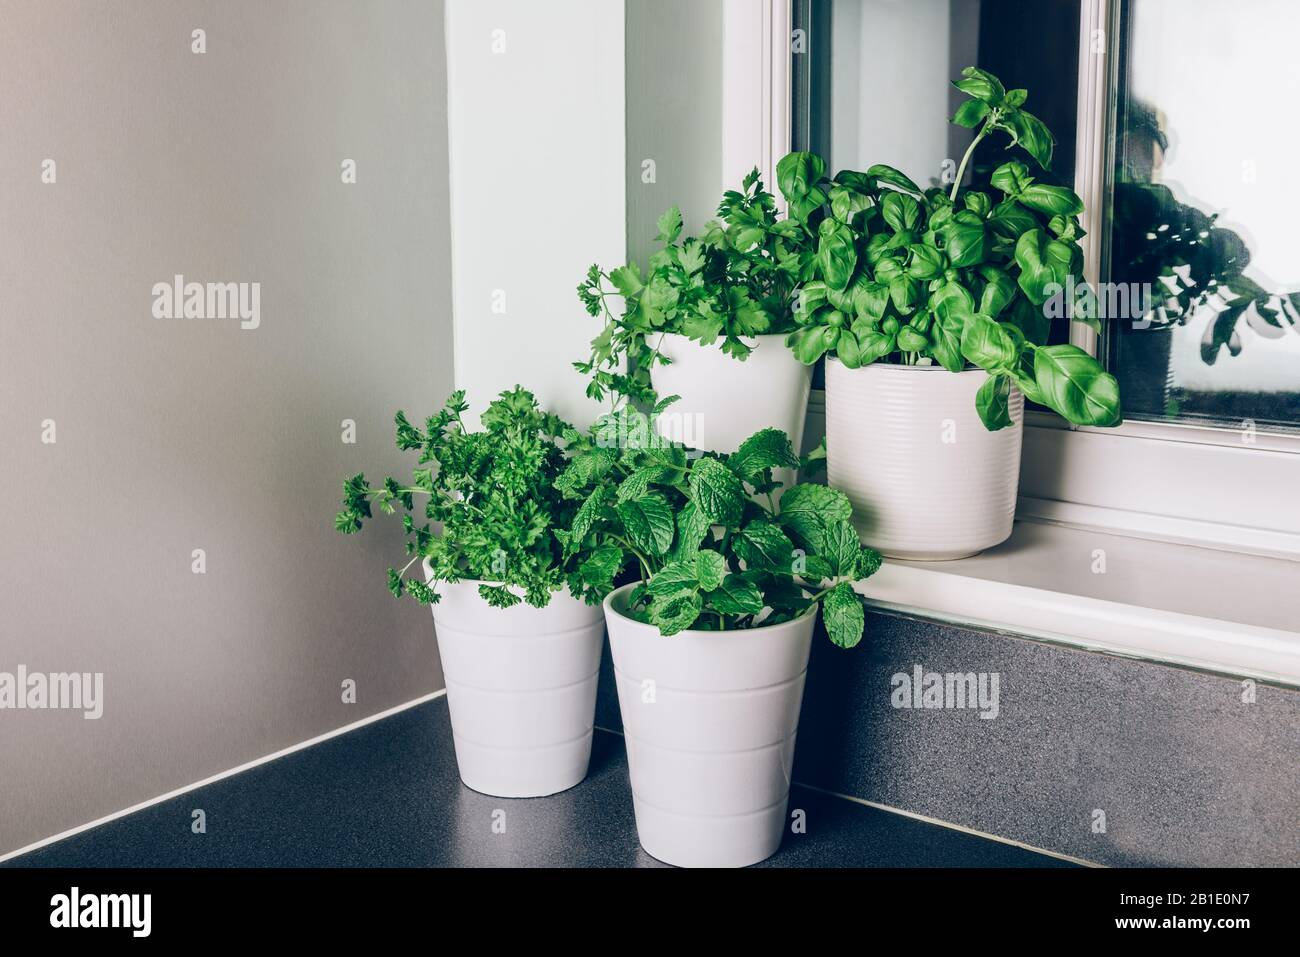 Assorted Herbs Thyme Oregano Basil Stockfotos Und Bilder Kaufen Alamy